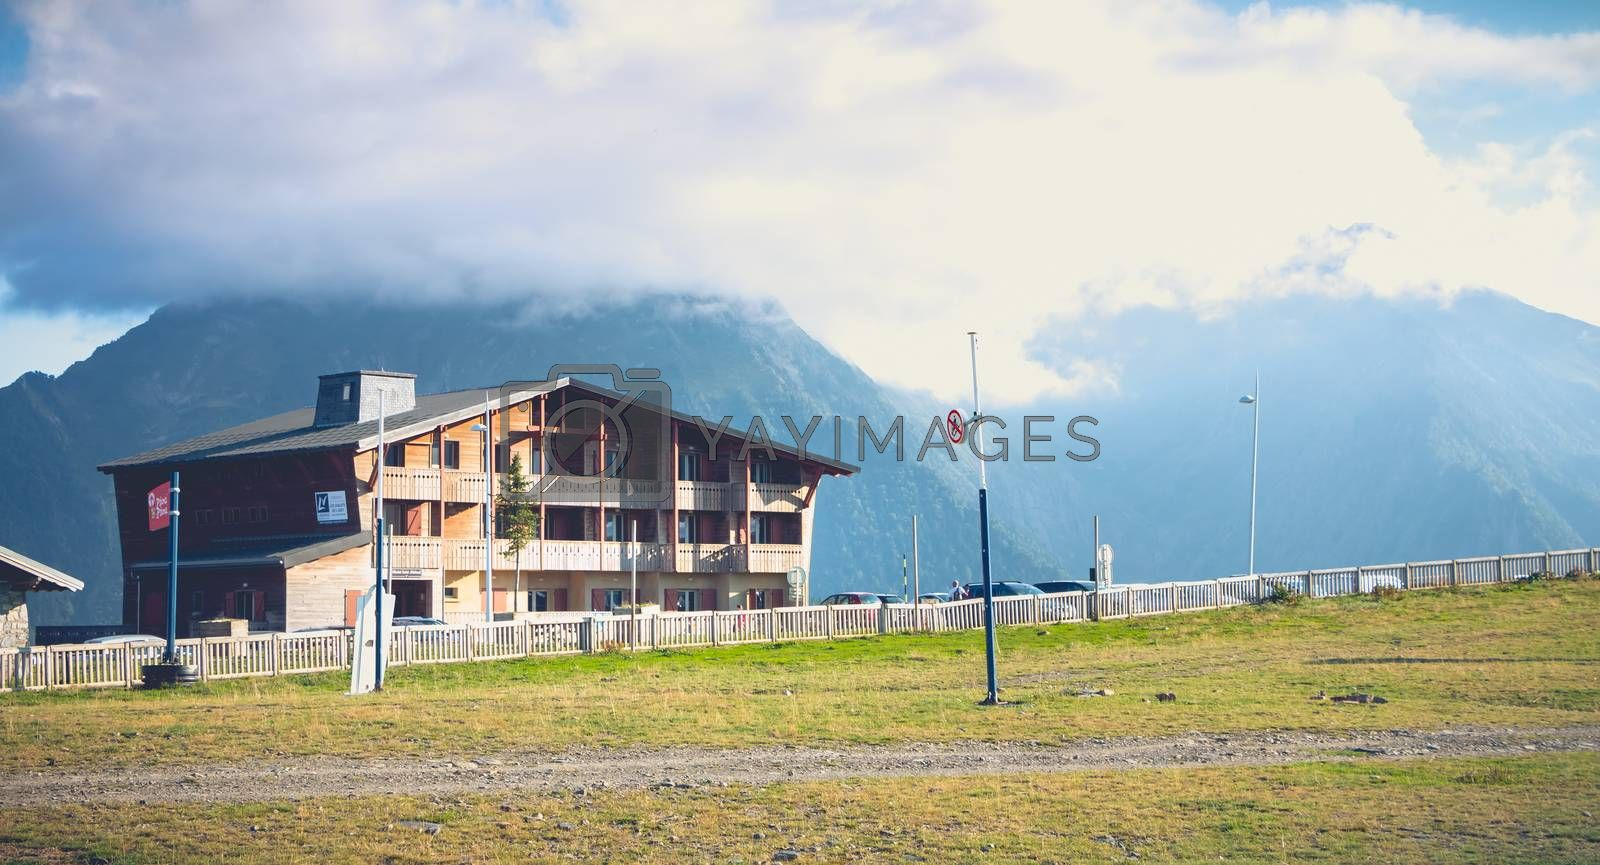 Saint Lary Soulan, France - August 20, 2018: mountain chalet in summer at the bottom of the slopes in a ski resort without snow